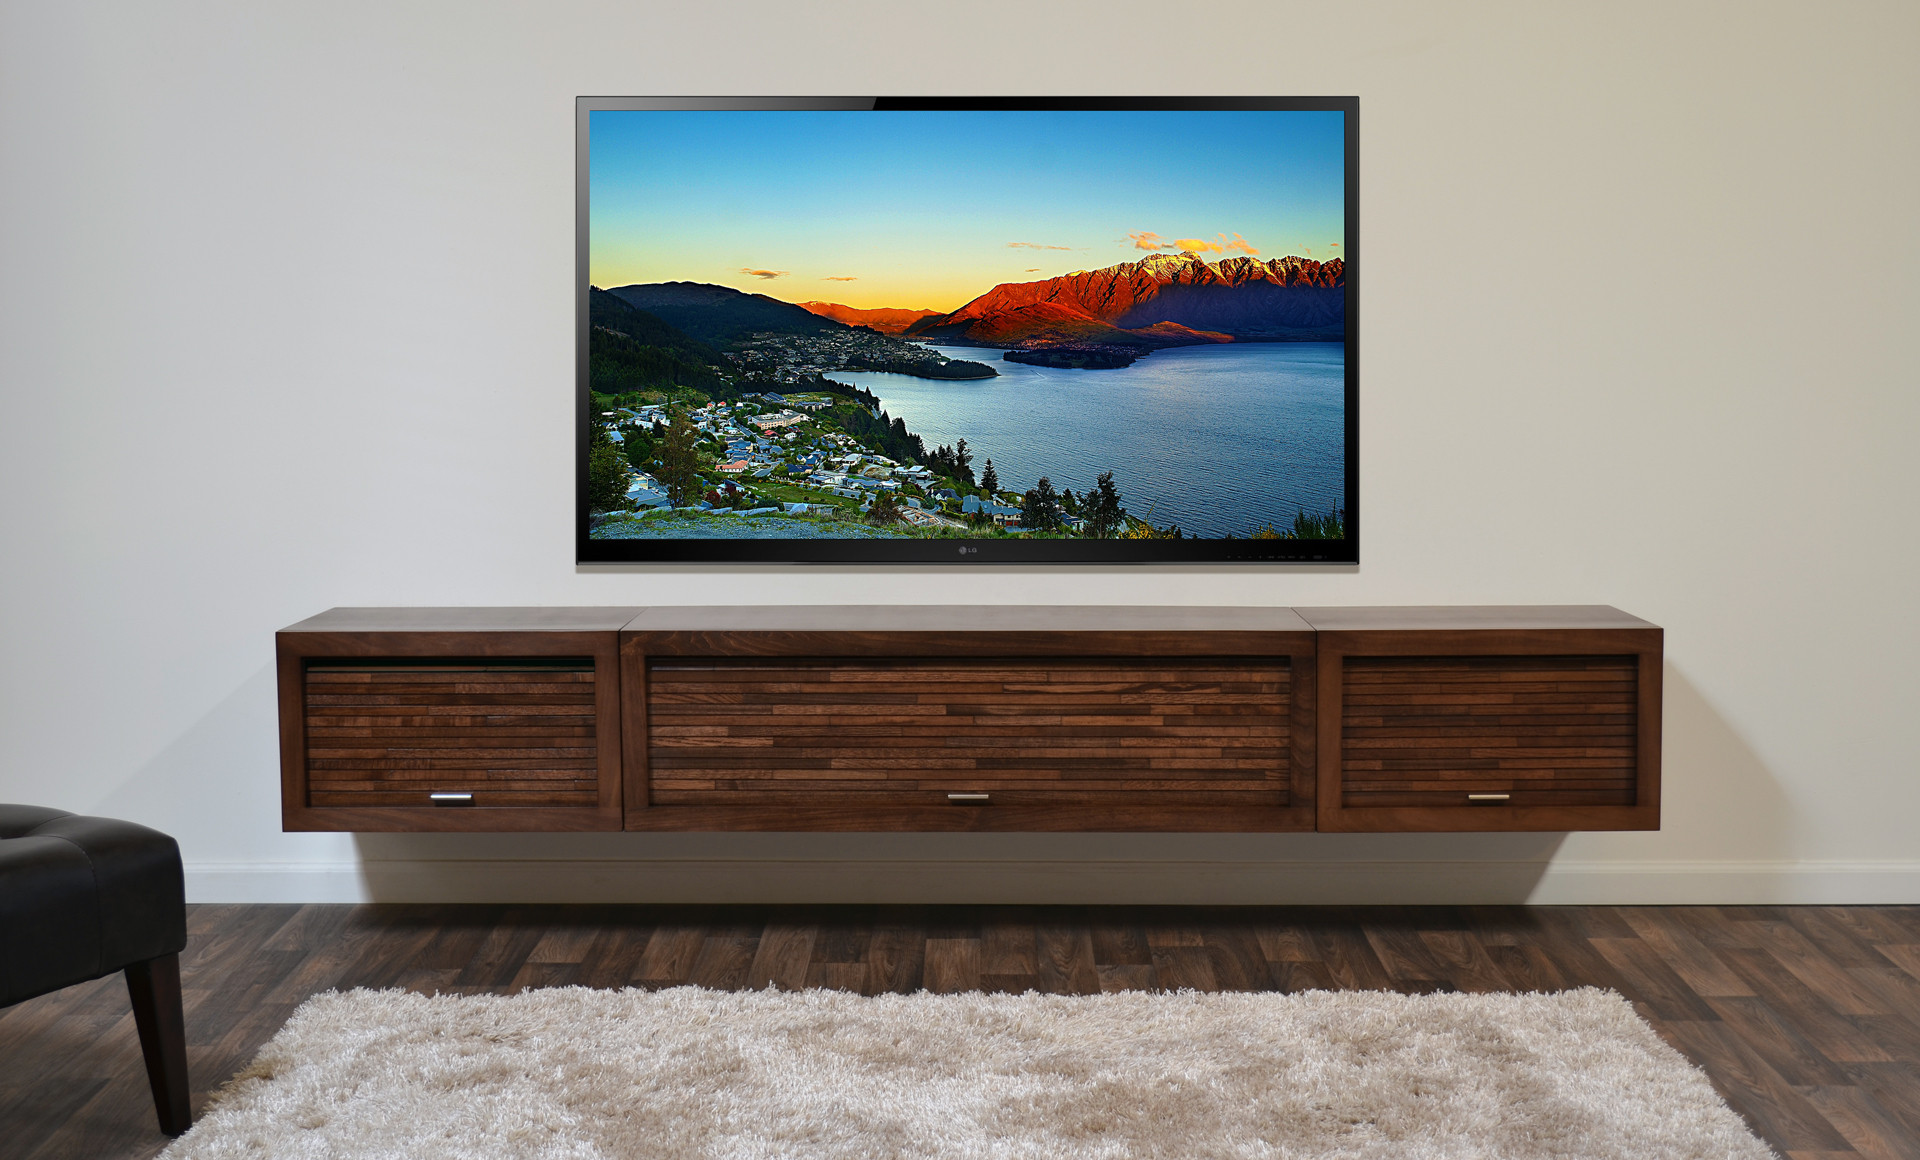 Hanging_TV_Wall Mount_Install TV